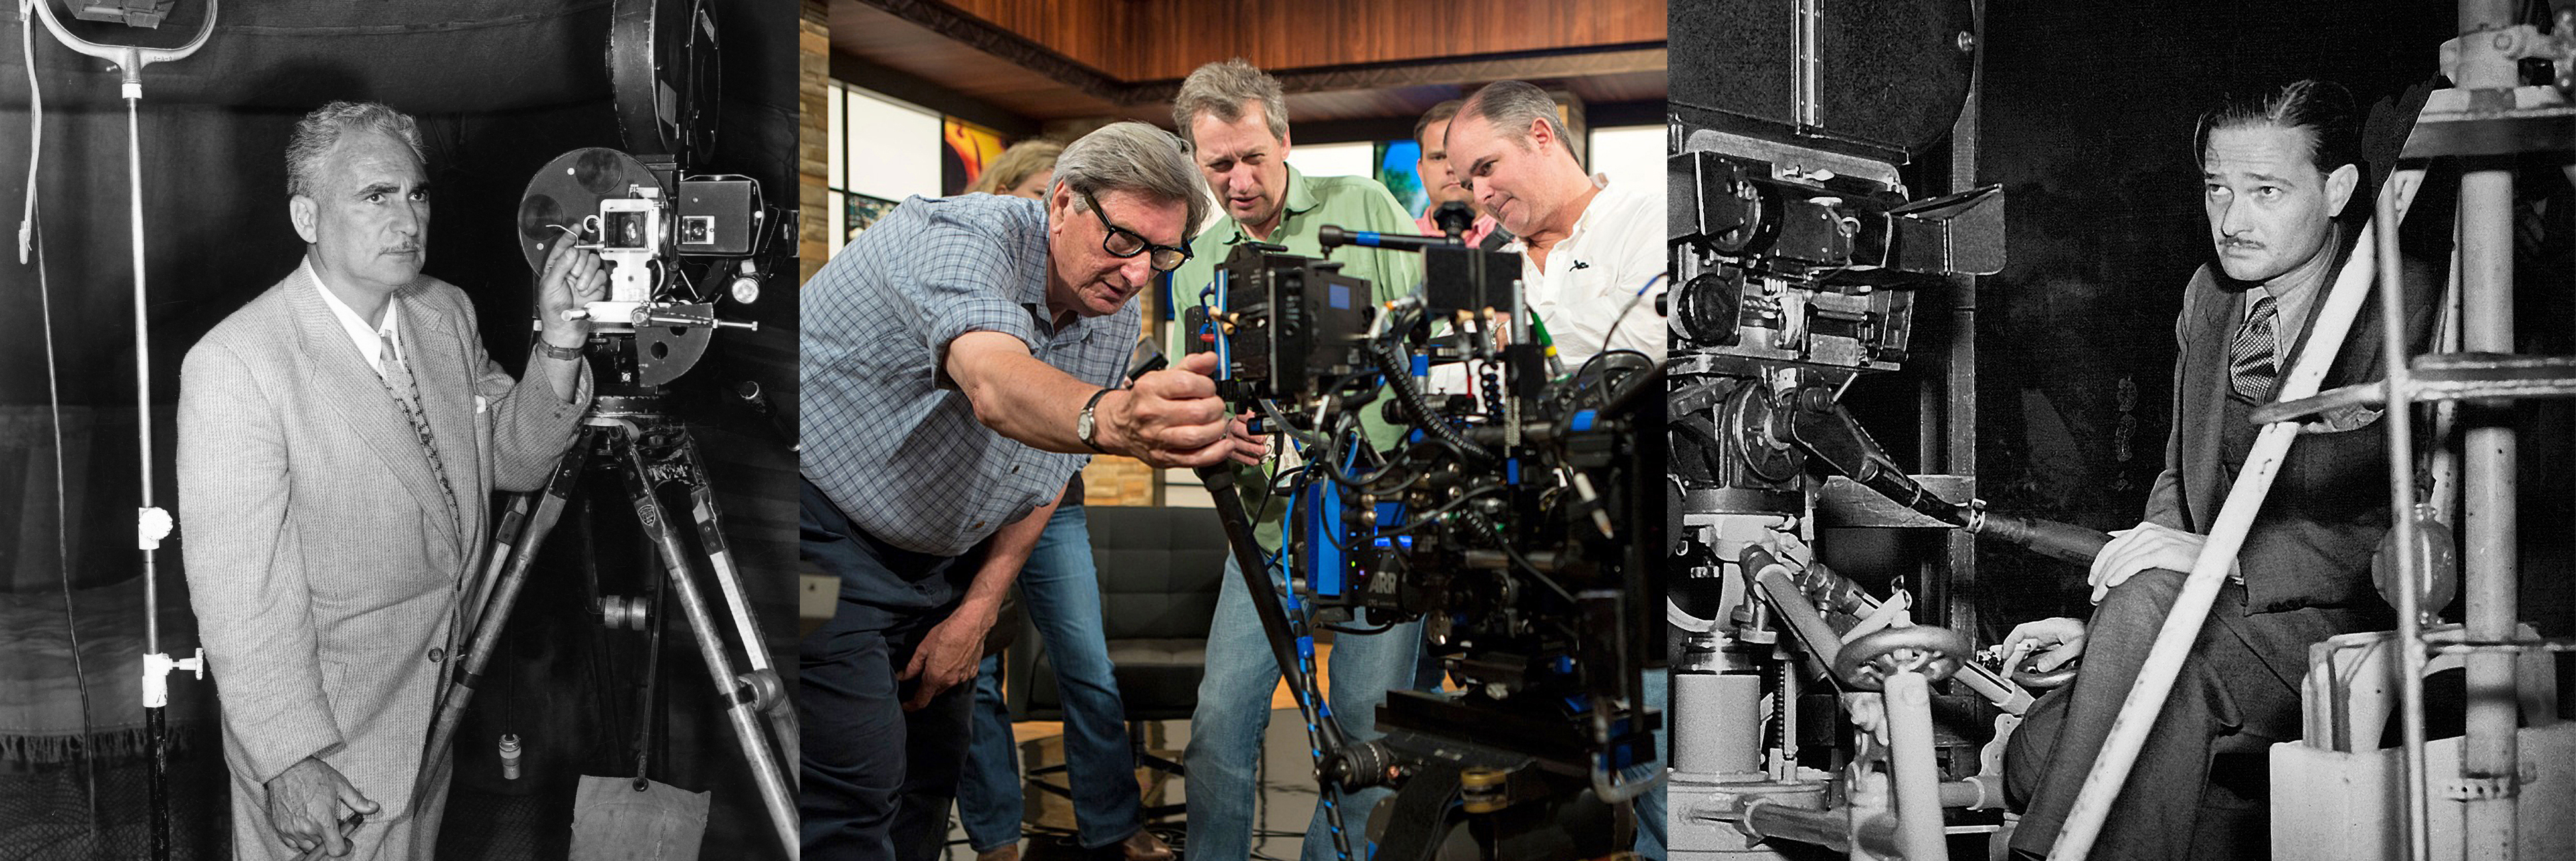 Future of Cinematography: Past as Prologue - The American Society of Cinematographers